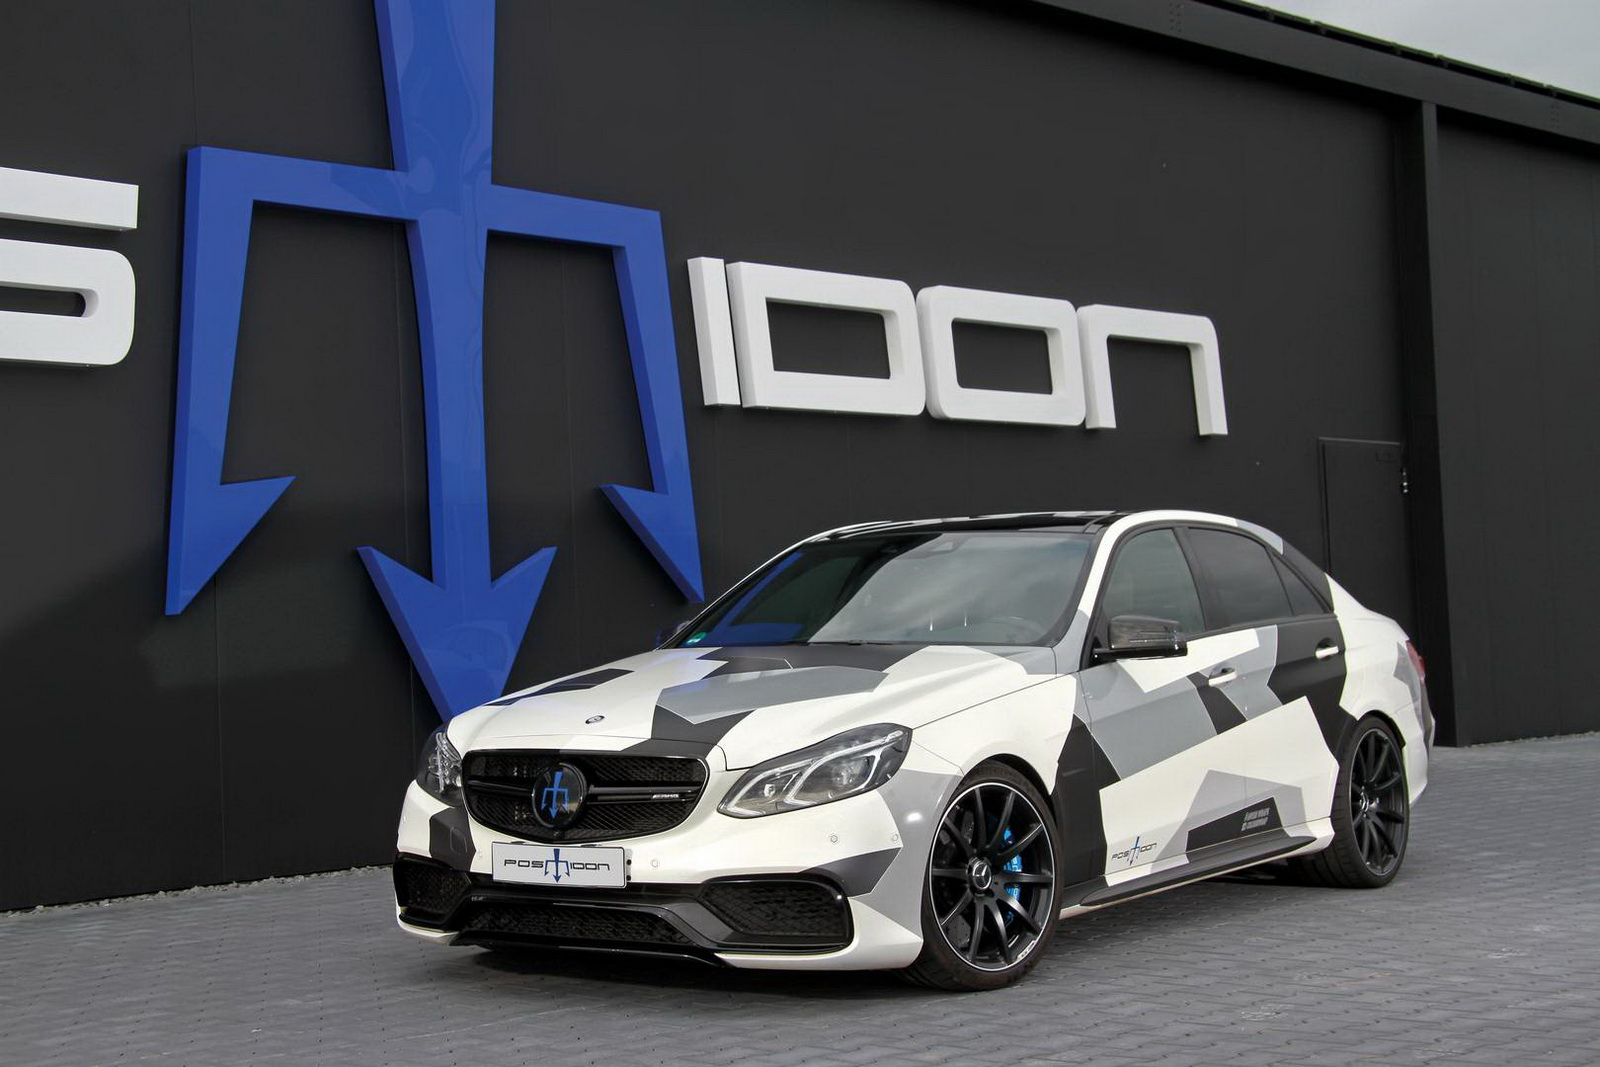 According to an official source, the car, which now has the same body as the Mercedes E212, had to undergo some profound redesign in order to benefit from the modifications under the hood